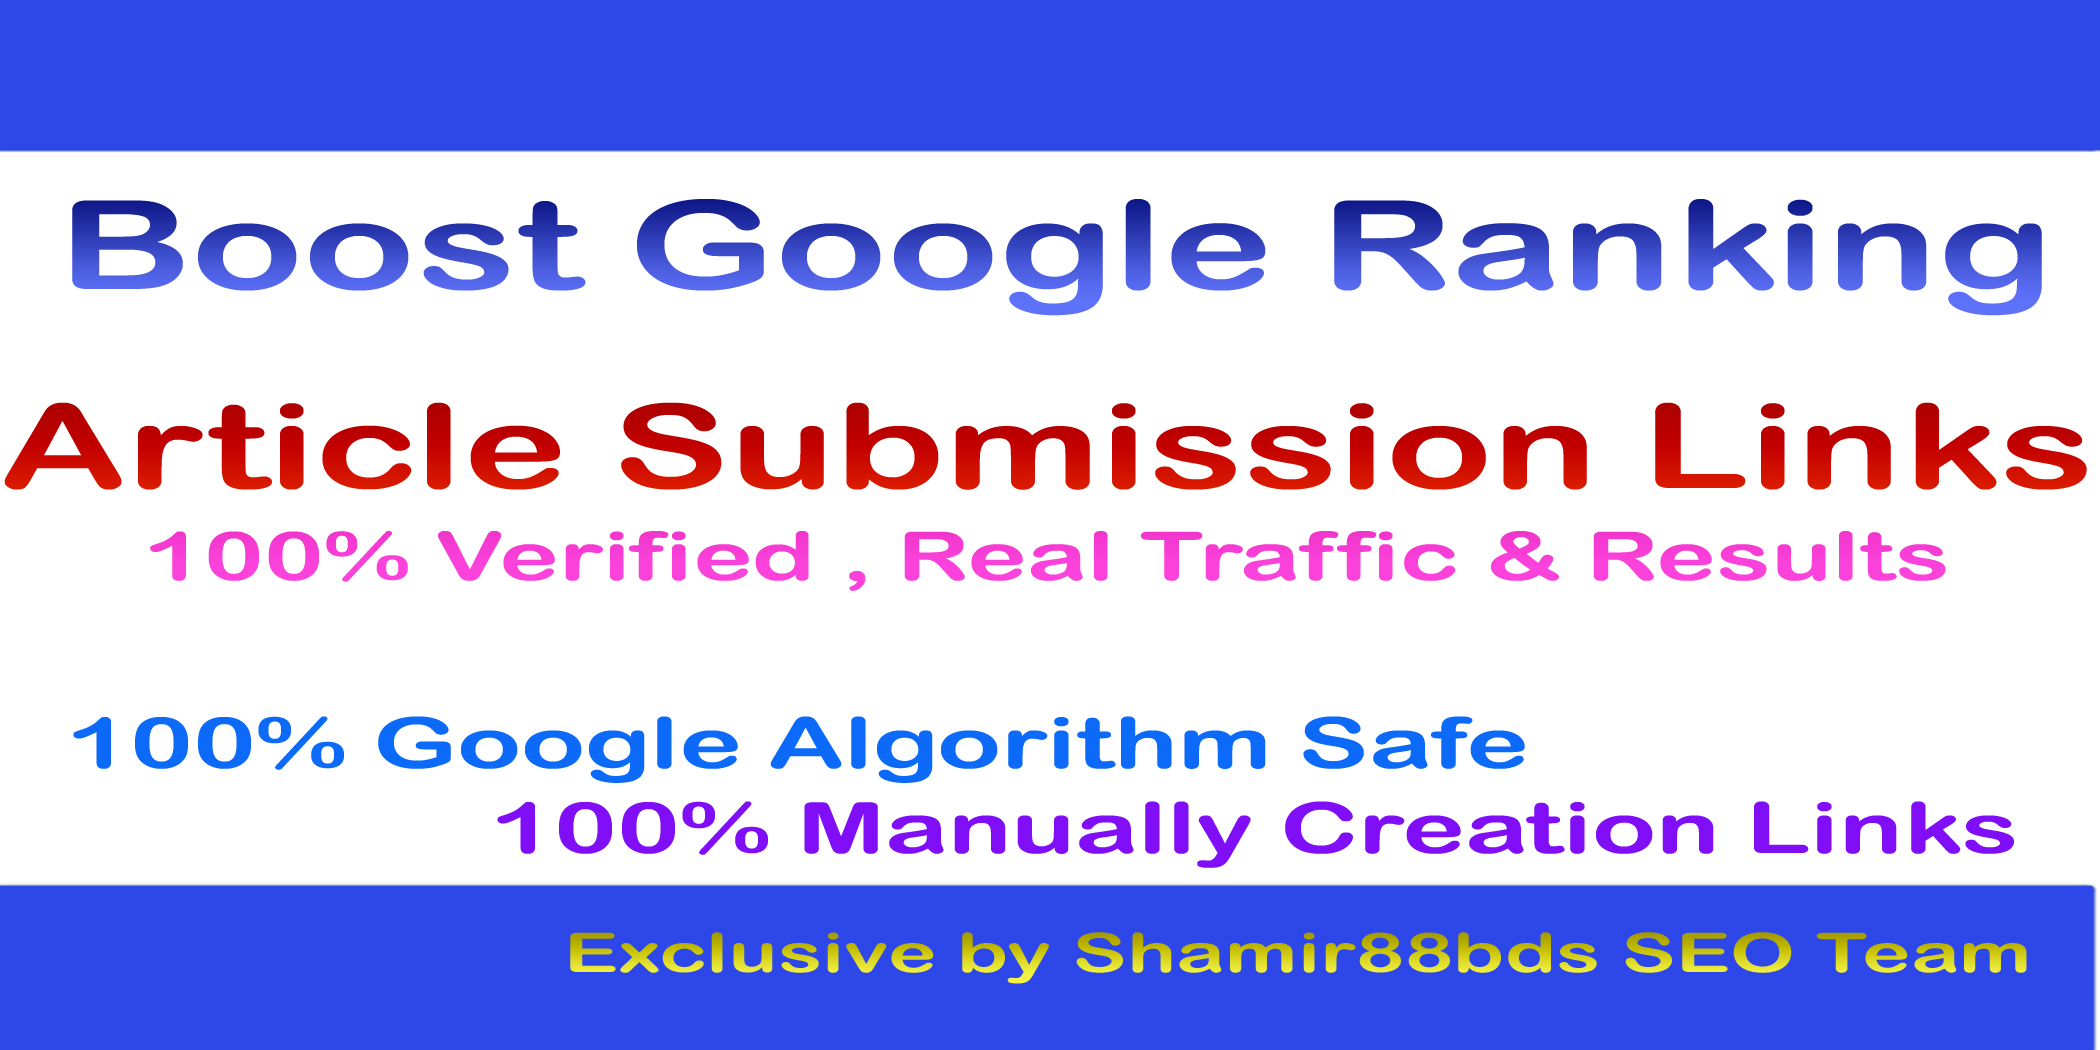 Verified 20 Article Submission Links DA50+ to Boost Google Ranking